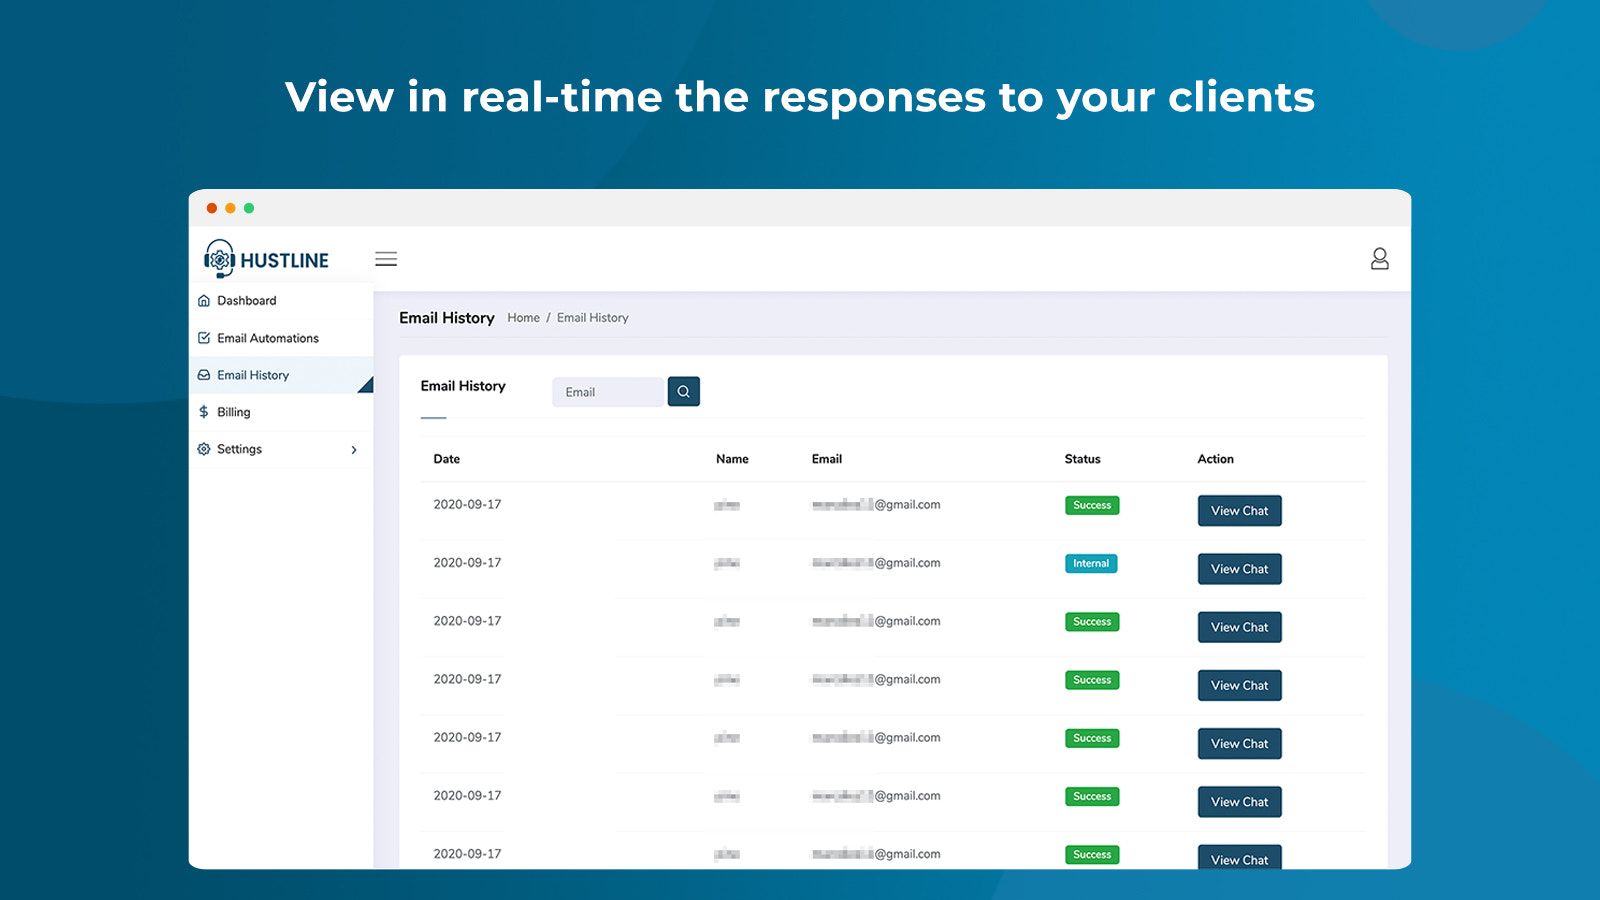 View in real-time the responses to your clients